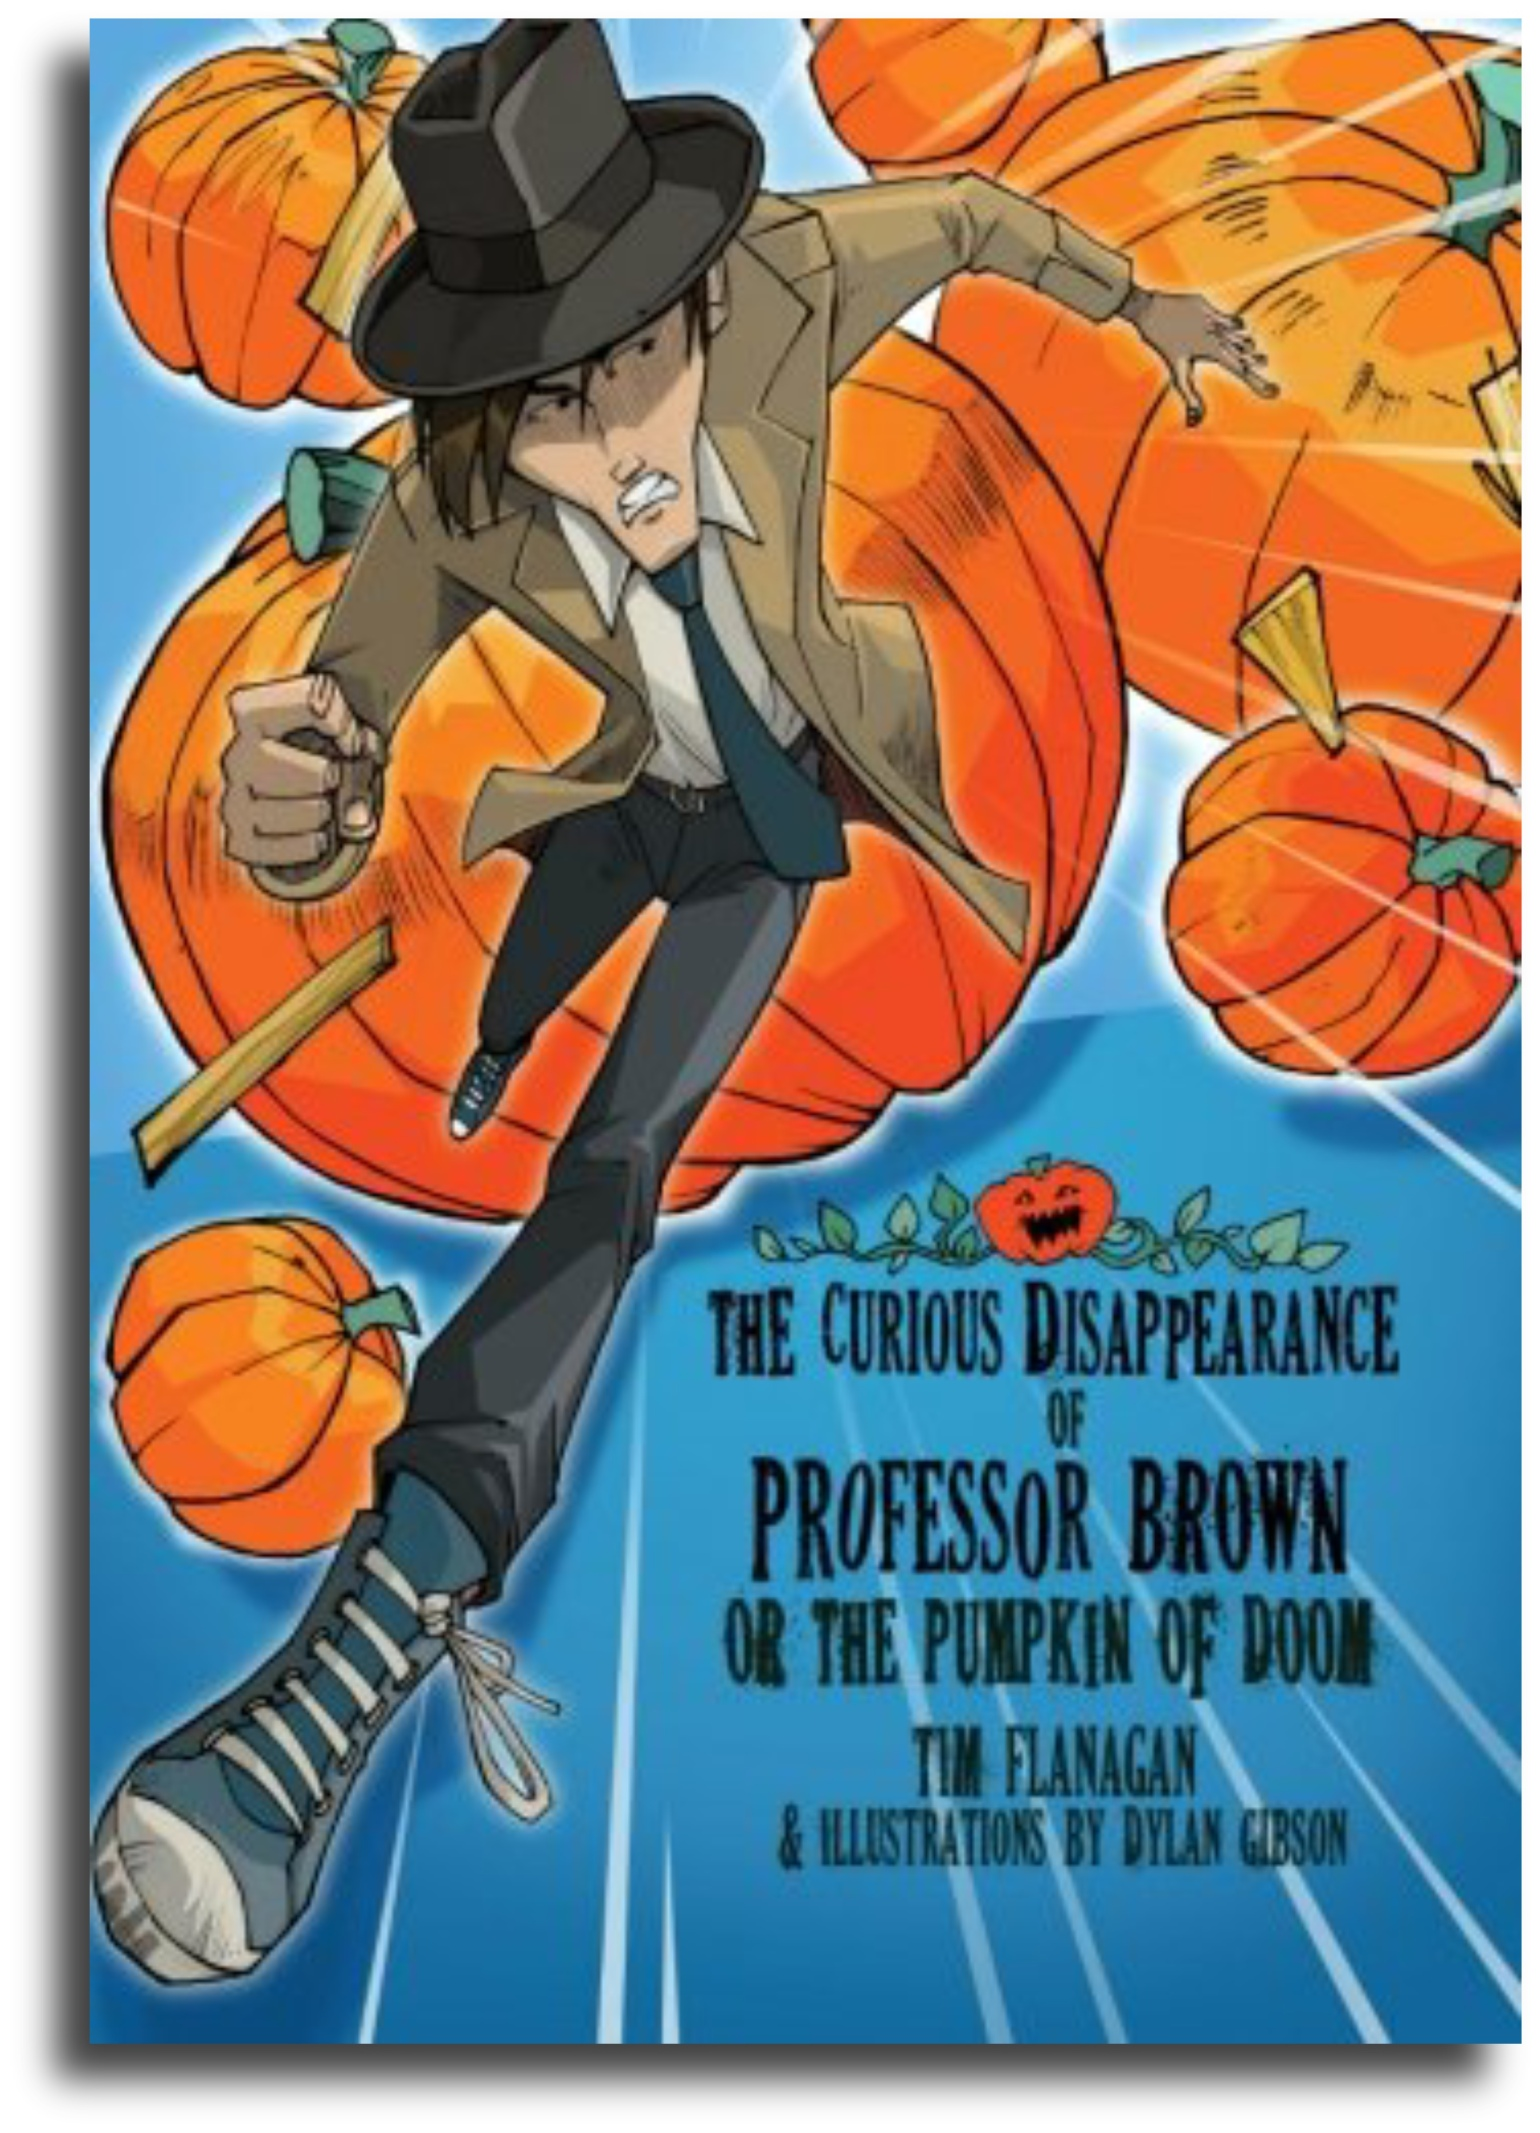 The Curious Disappearance of Professor Brown